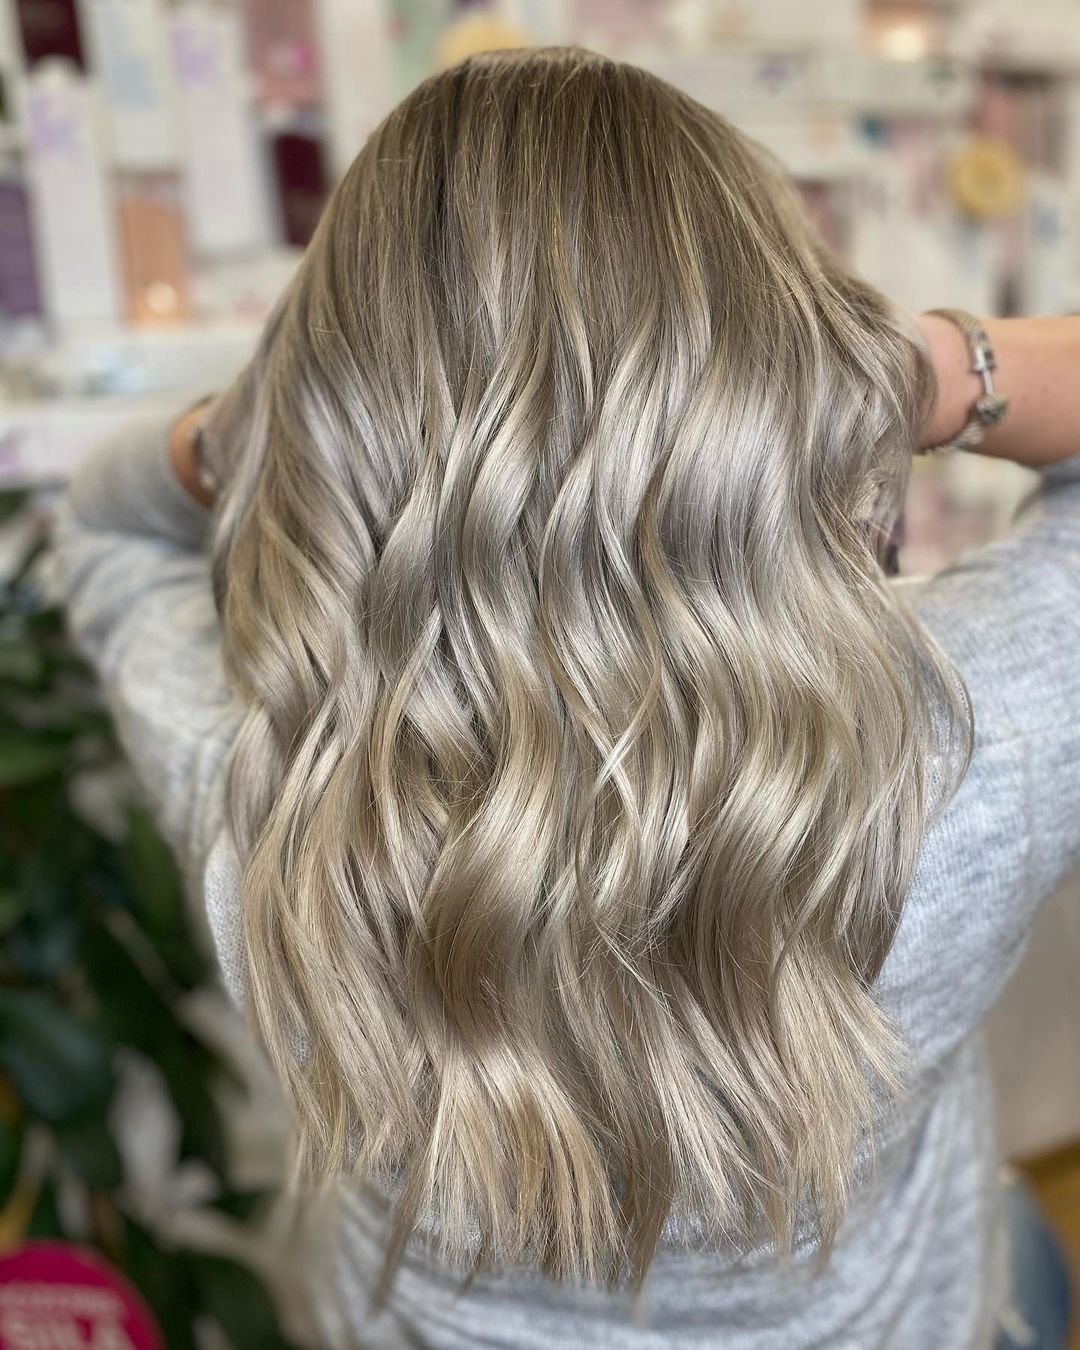 21 Stunning Silver Blonde Hair Colors